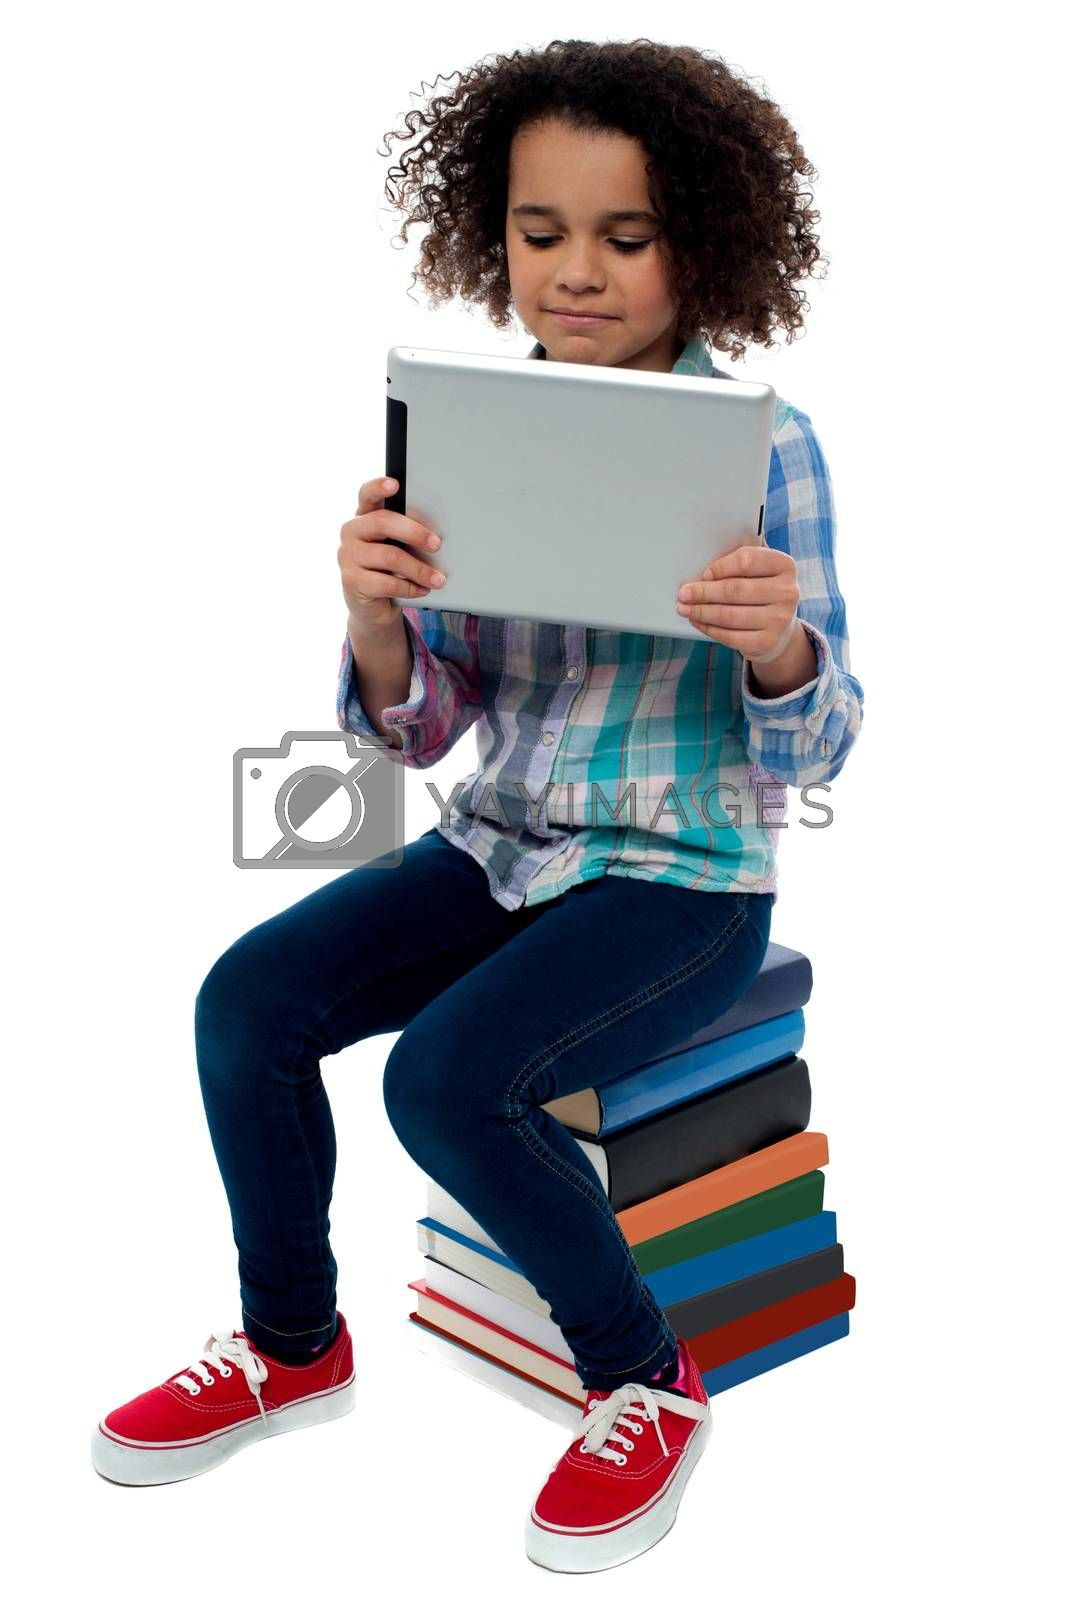 Little girl sitting on books with digital tablet